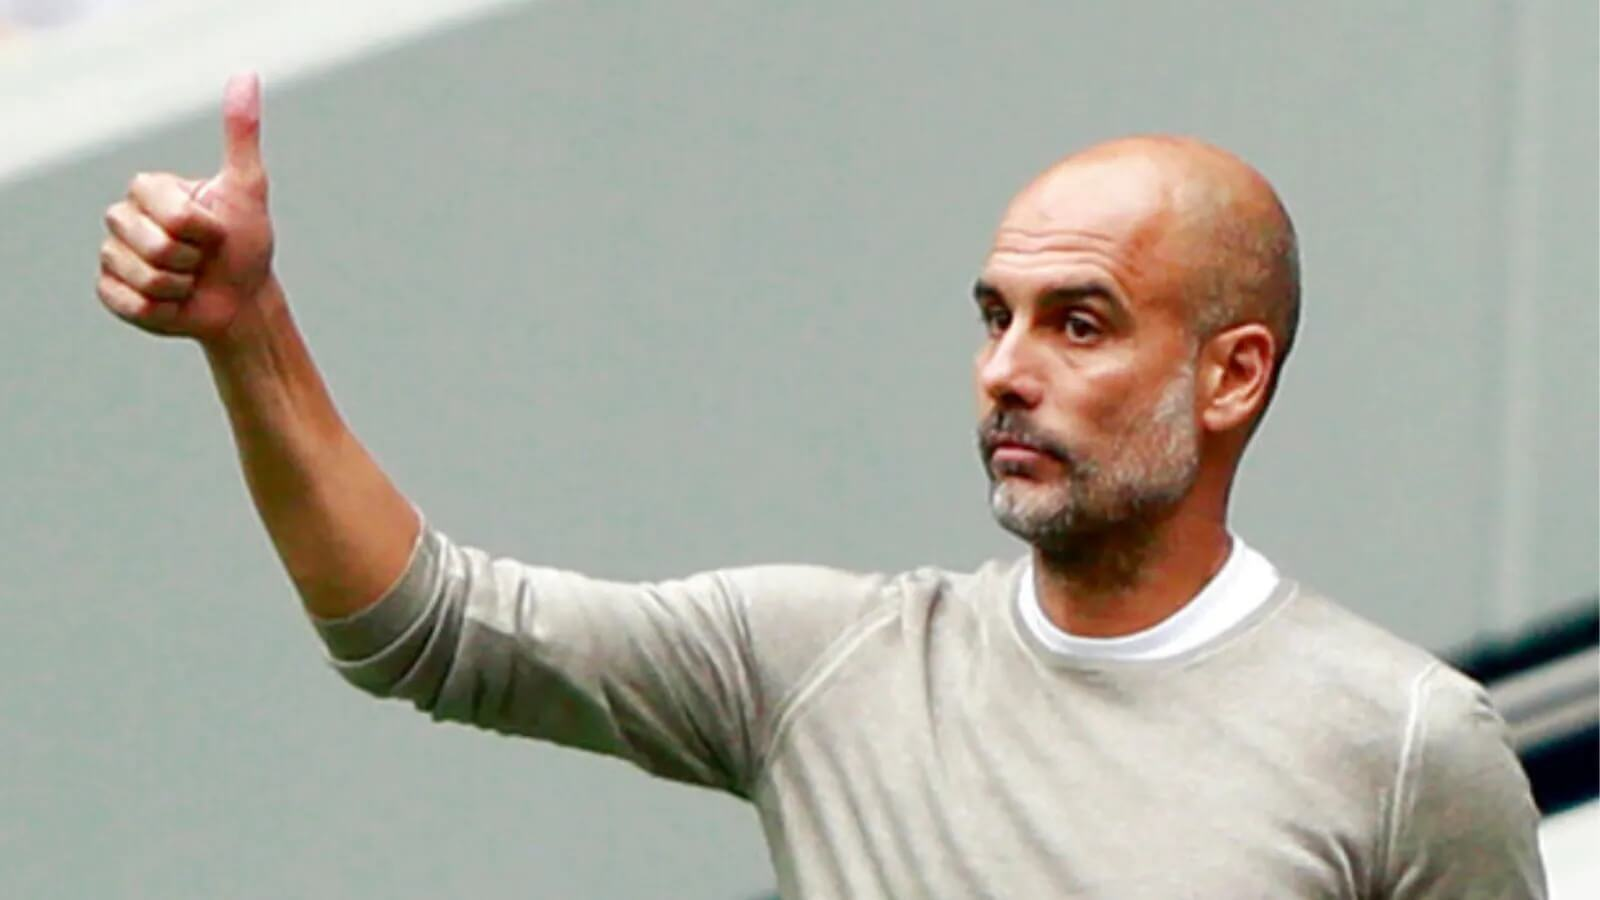 Guardiola has no plans to leave Manchester City